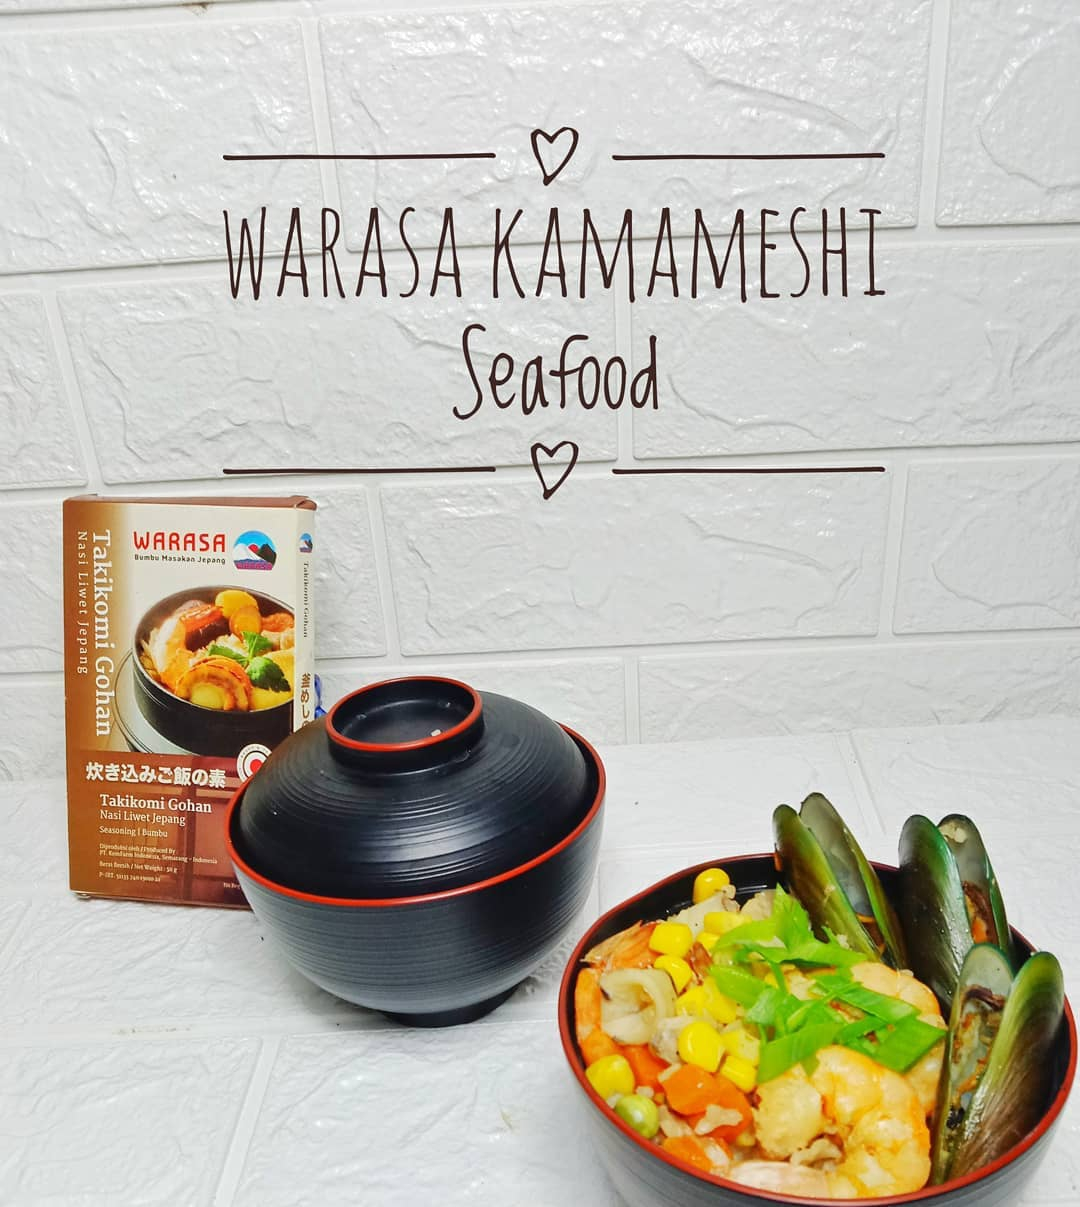 KAMAMESHI SEAFOOD